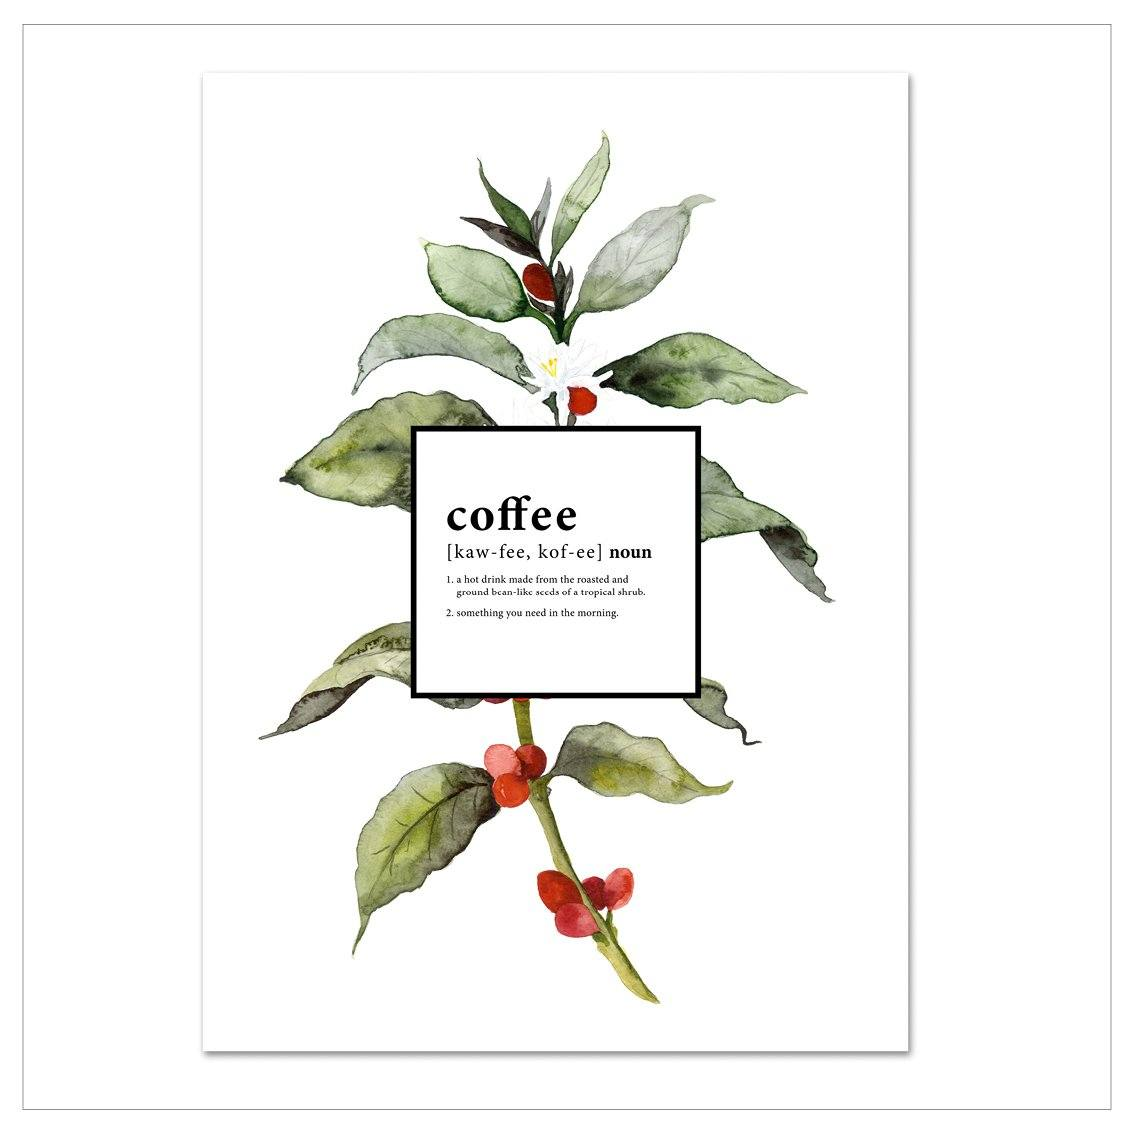 Kunstdruck - WHAT'S COFFEE Kunstdruck Leo la Douce